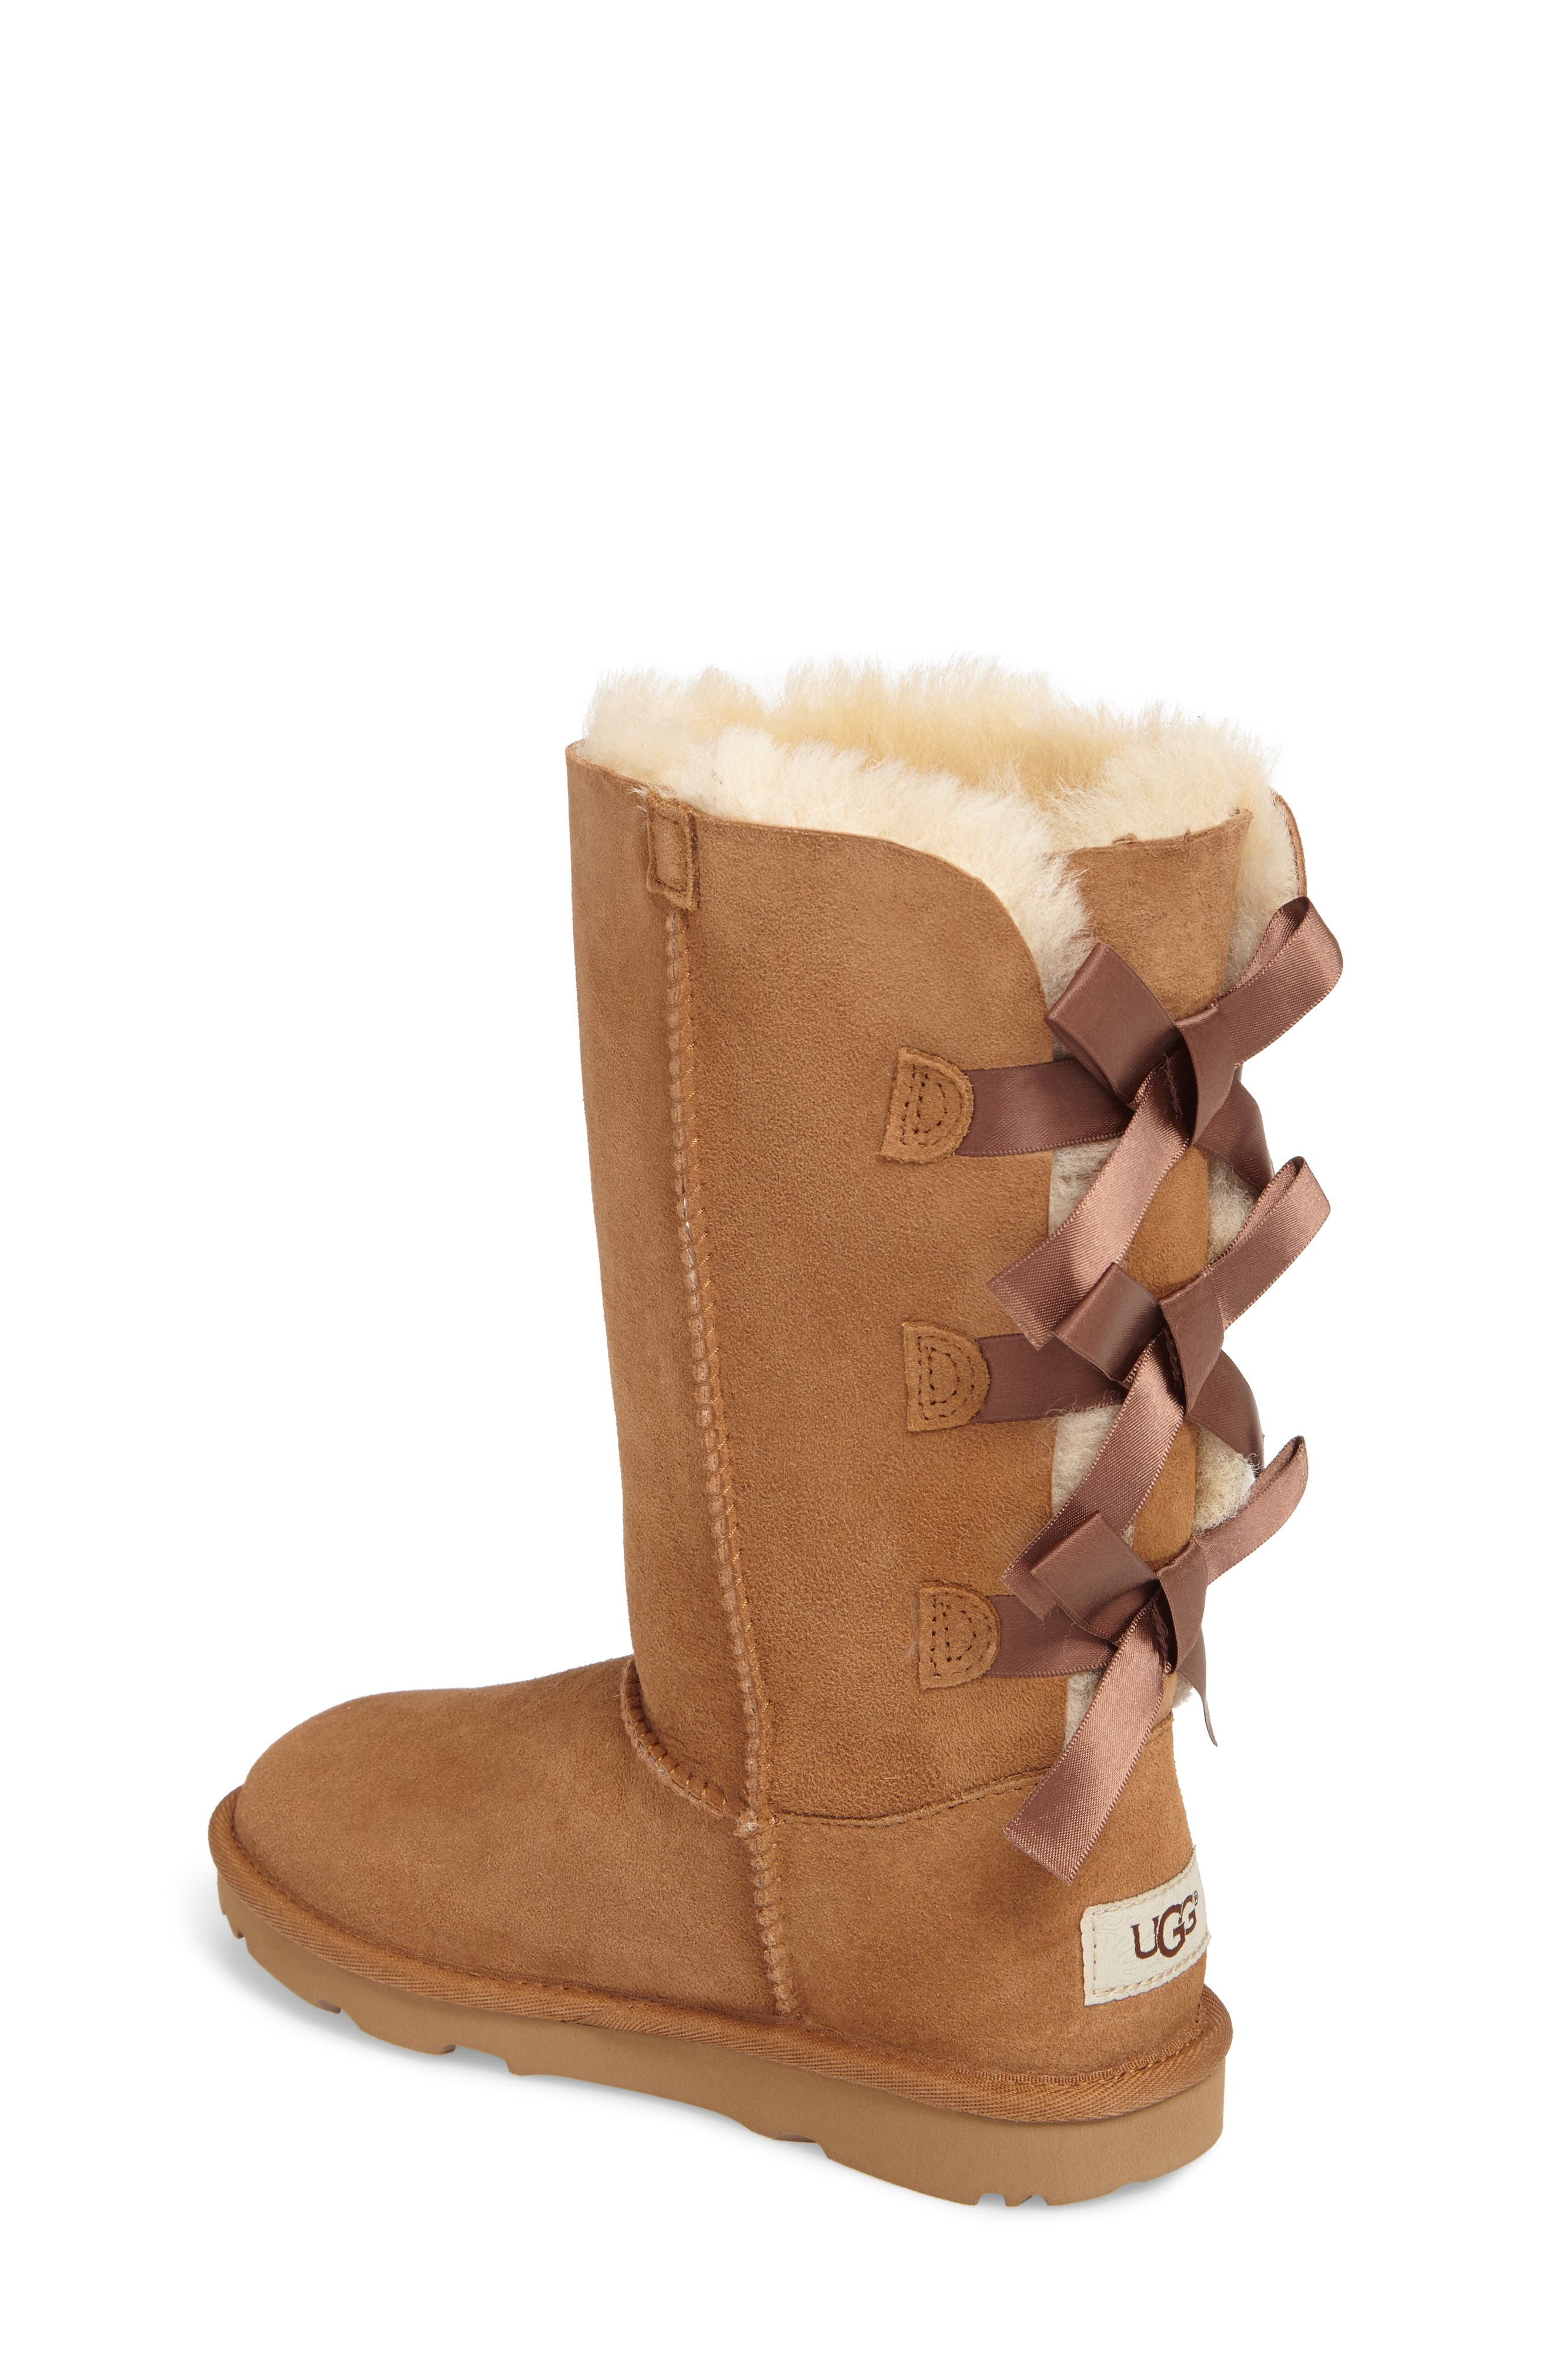 Bailey Bow Tall II Water Resistant Genuine Shearling Boot,                             Alternate thumbnail 2, color,                             Chestnut Brown